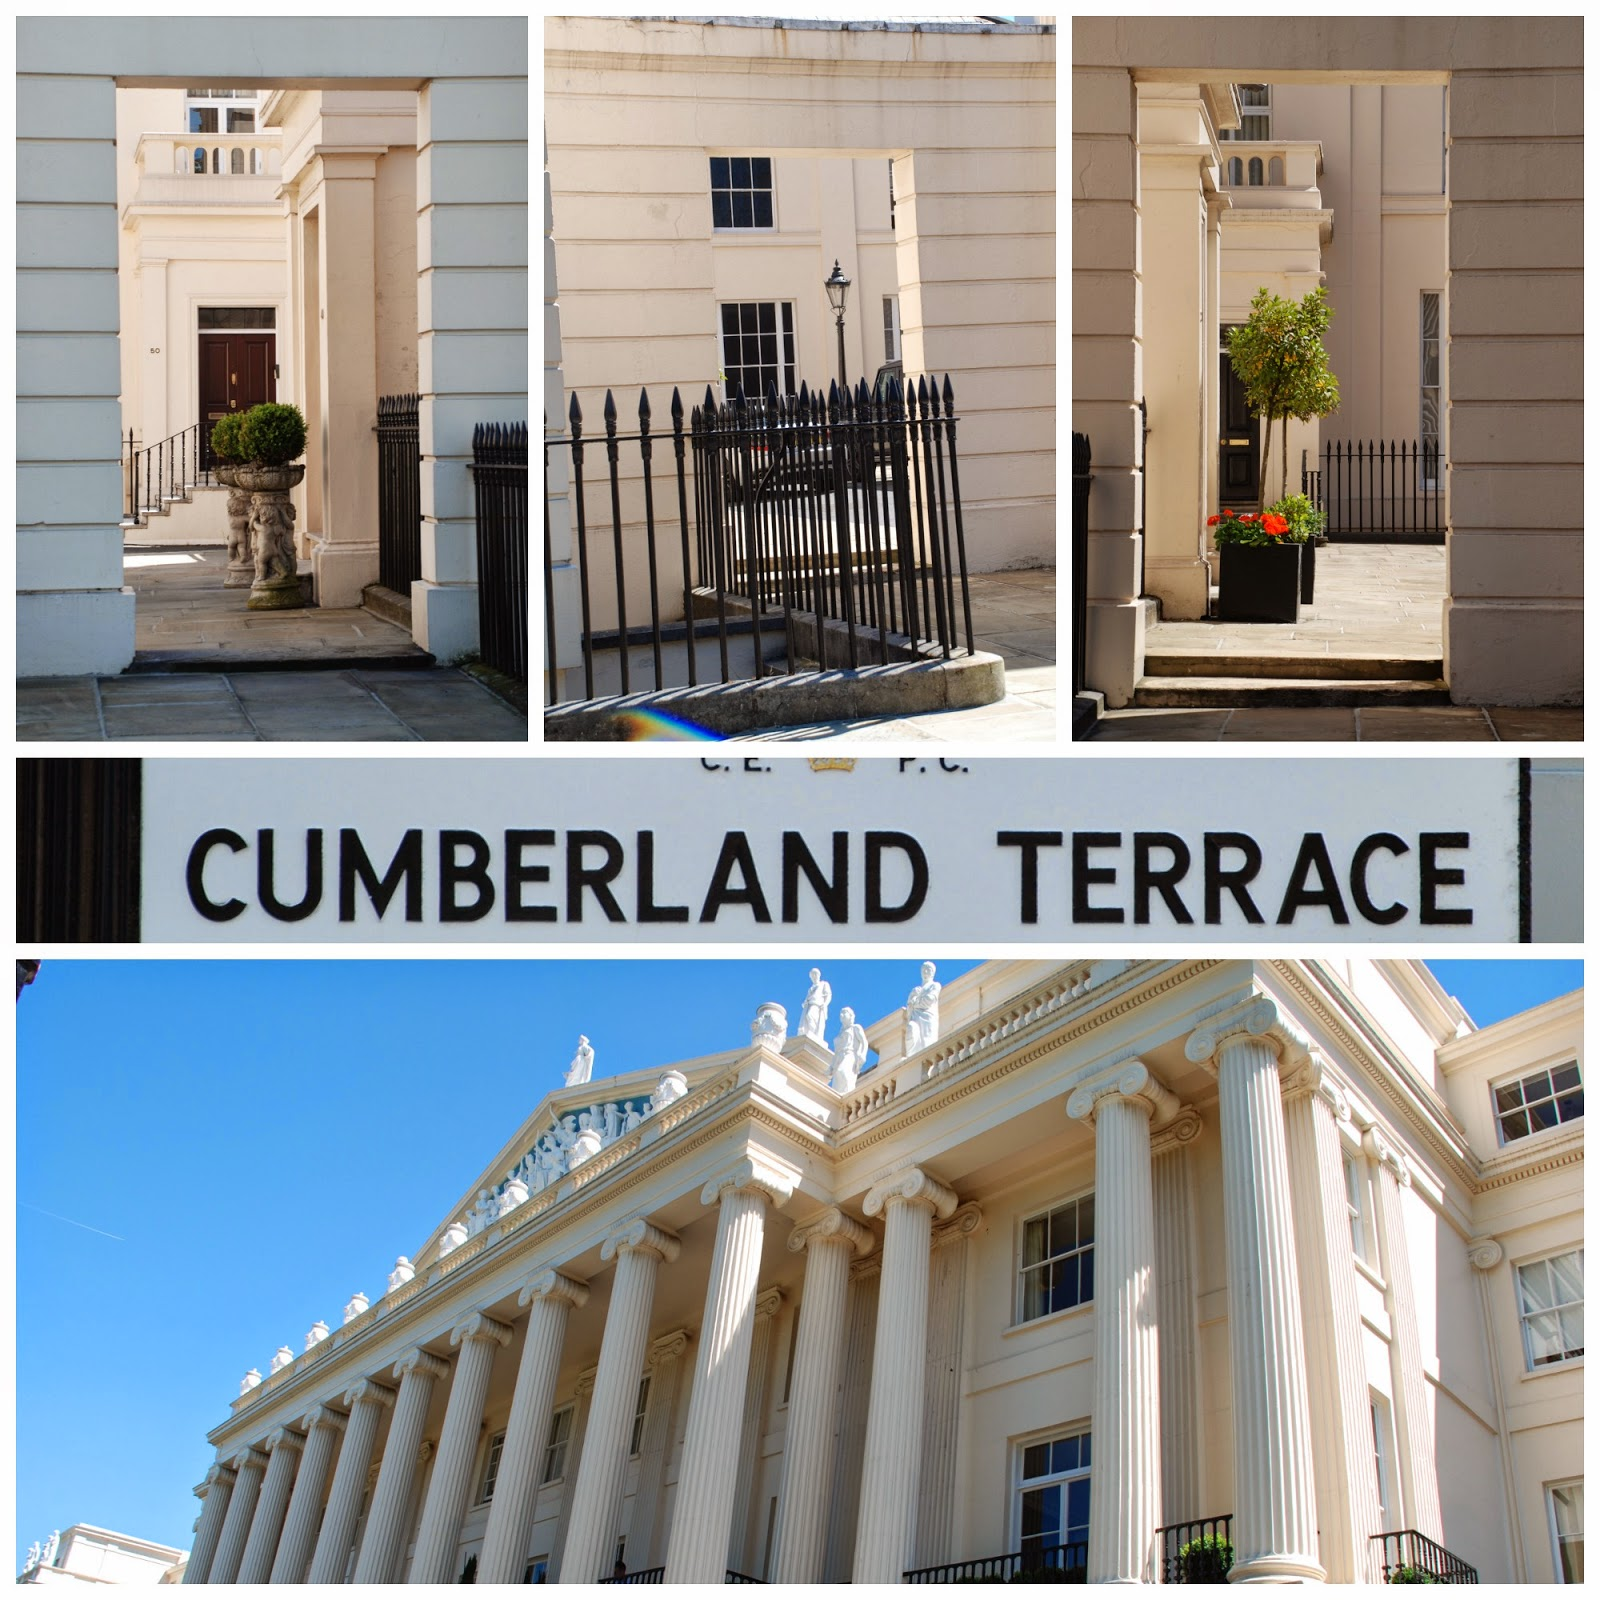 Cumberland Terrace, London